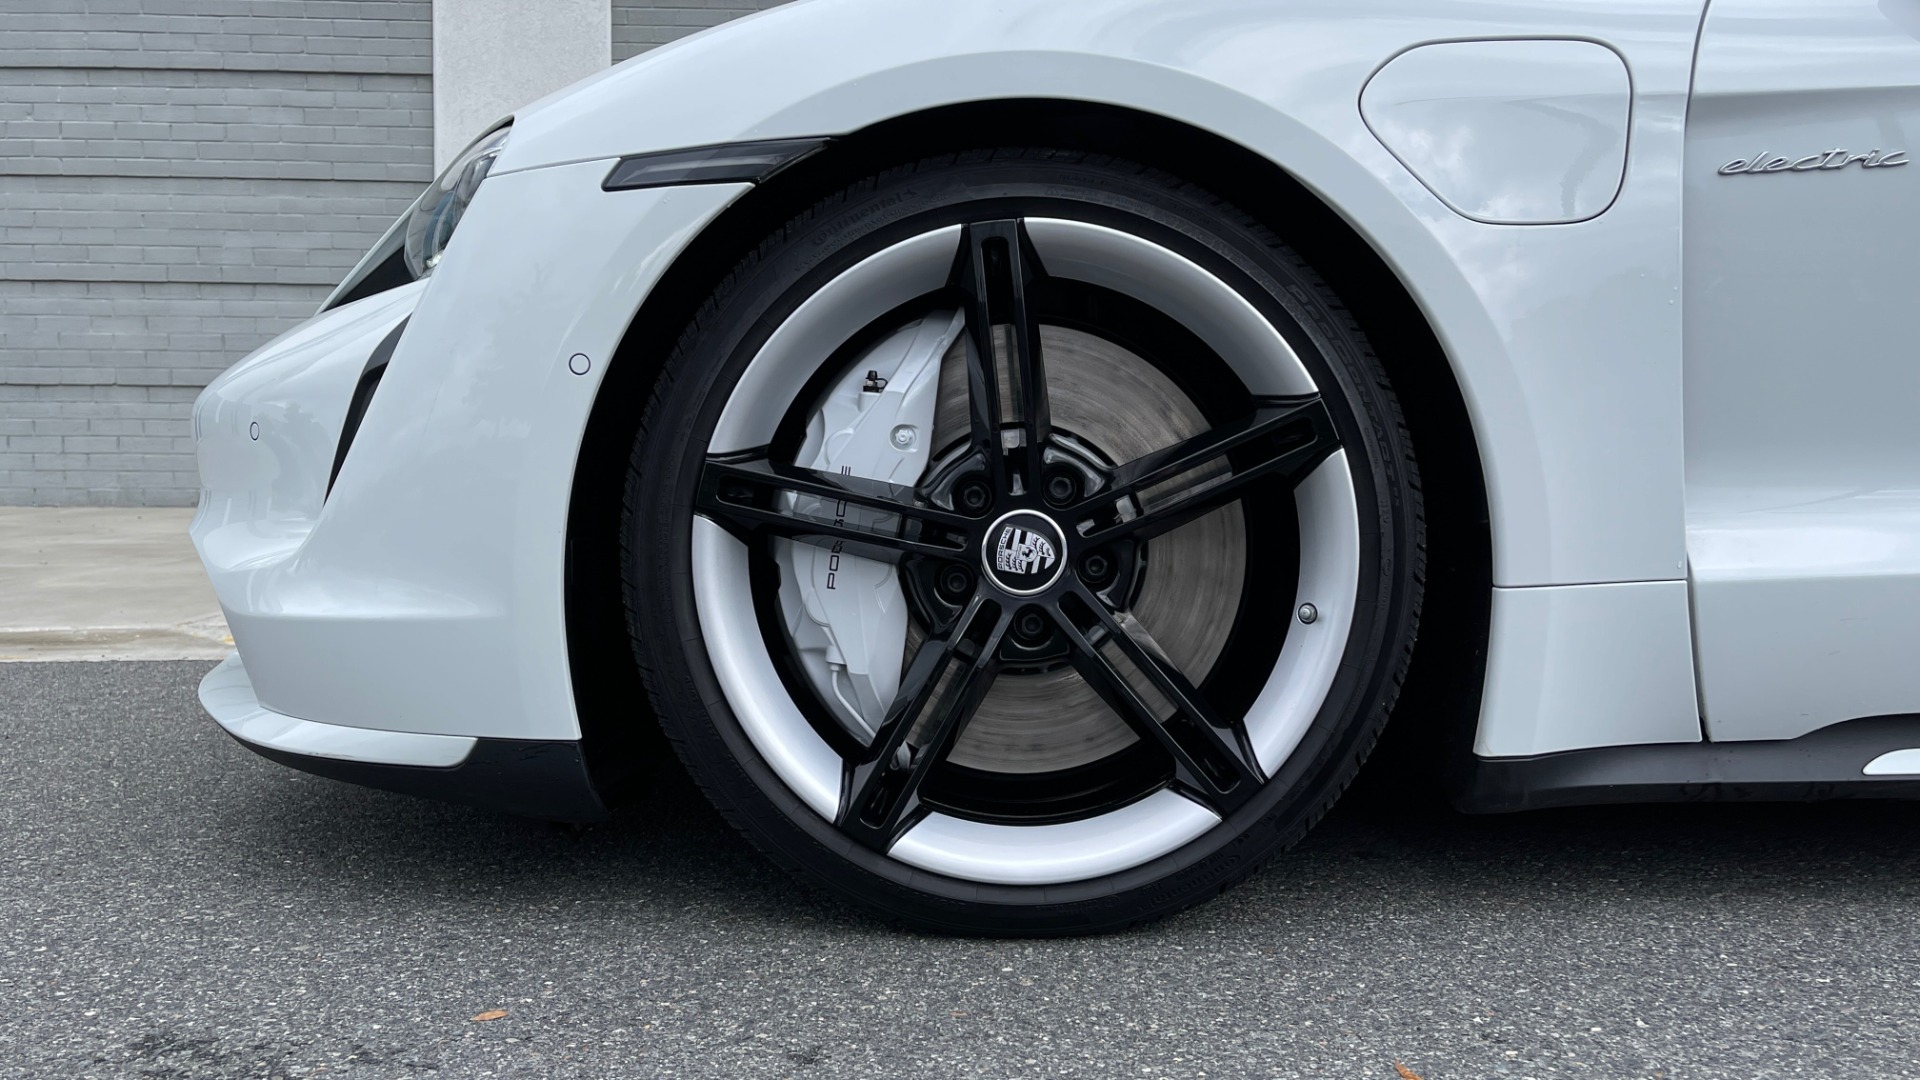 Used 2020 Porsche TAYCAN TURBO SEDAN / AWD / NAV / BOSE / PANO-ROOF / LCA / SURROUND VIEW for sale $162,995 at Formula Imports in Charlotte NC 28227 72